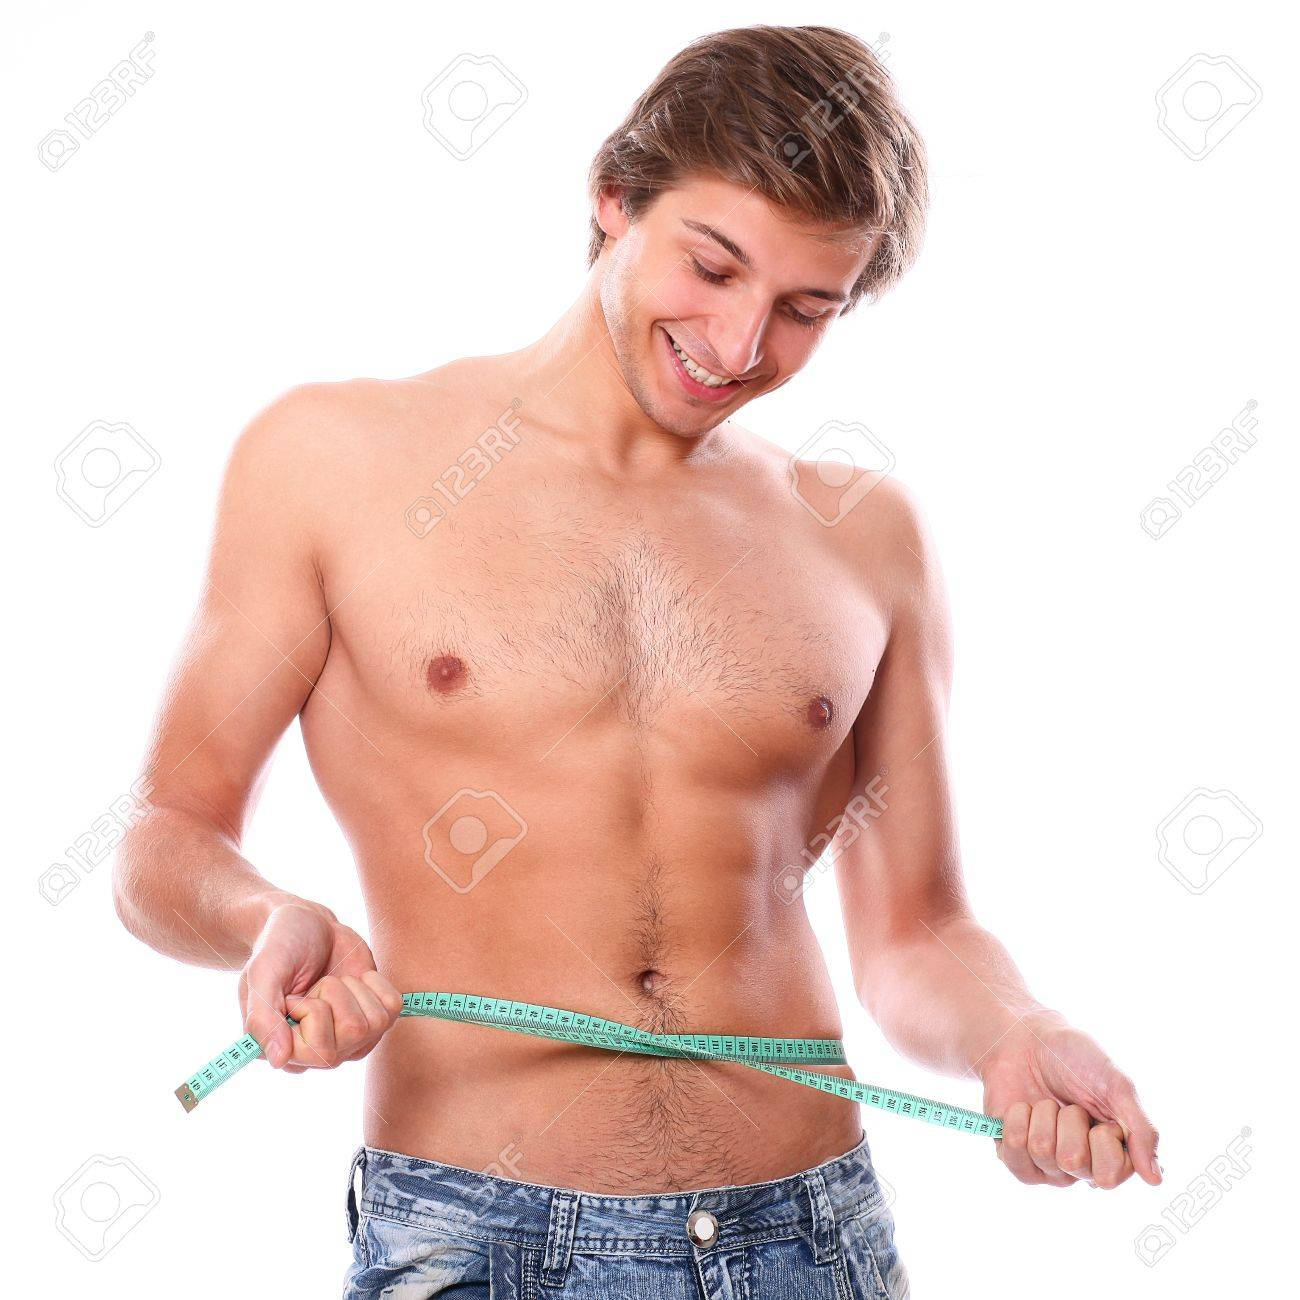 Sexy and handsome man measuring his belly after weight lose over a white background Stock Photo - 16924611